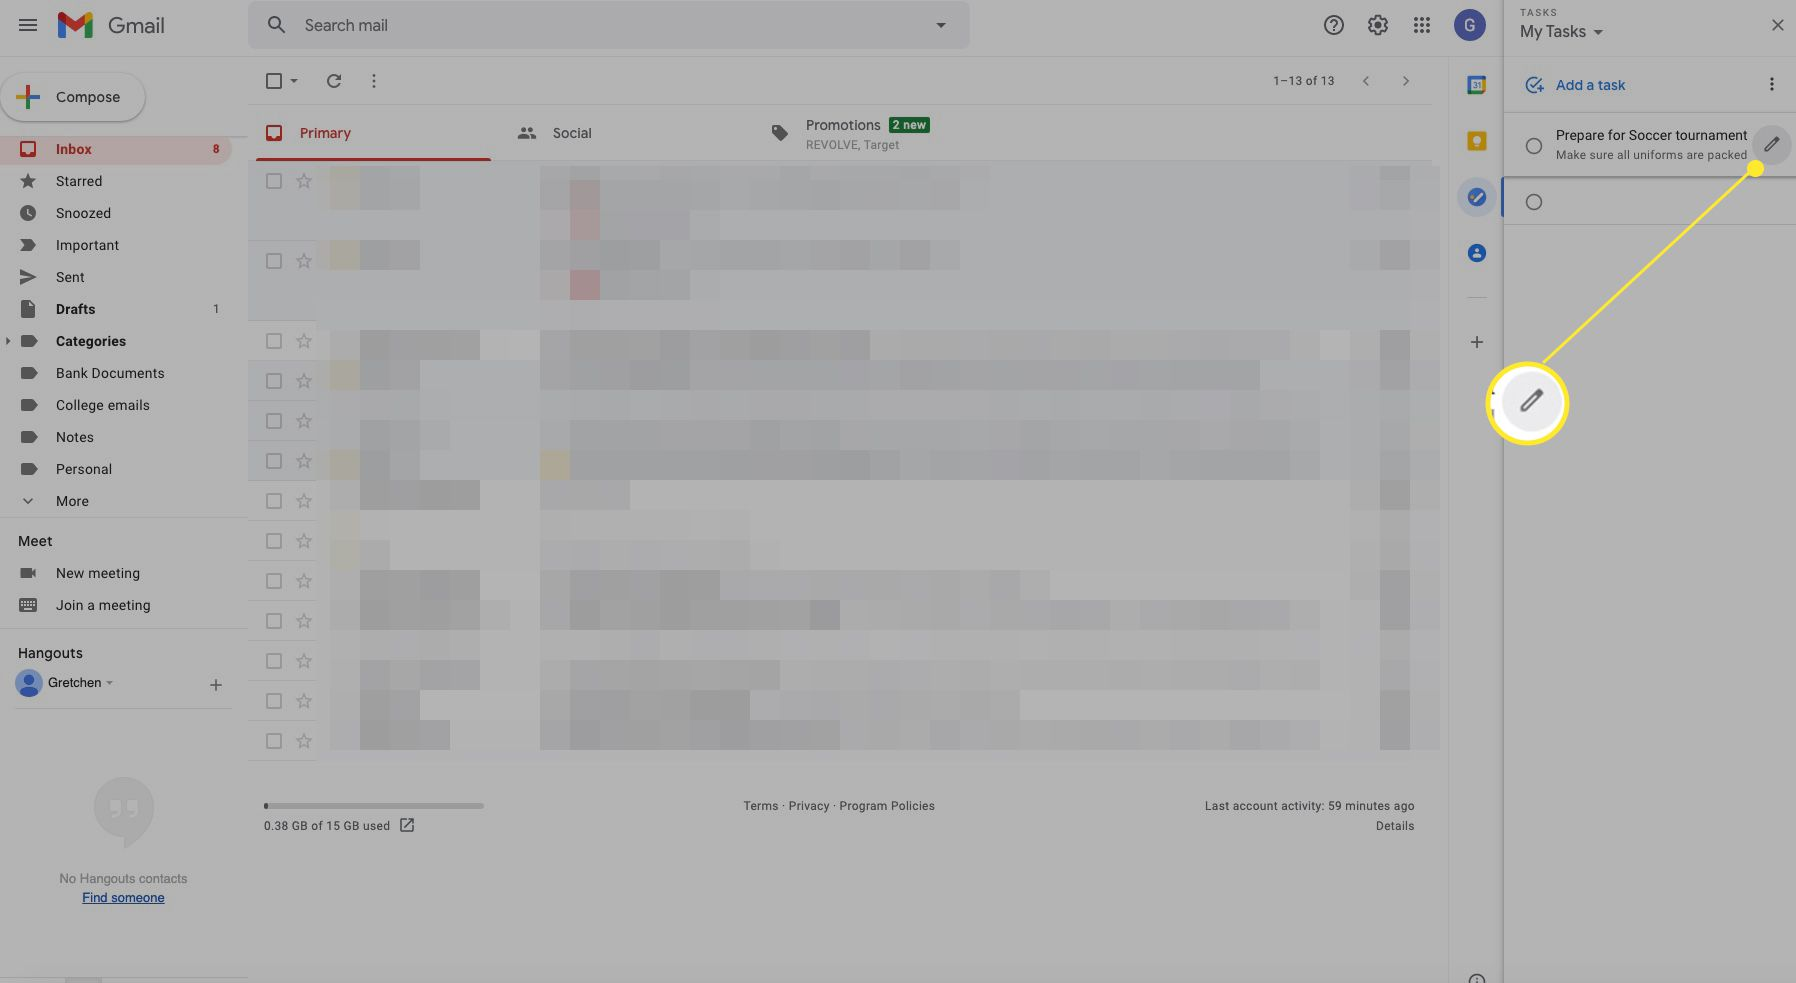 Tasks screen with edit icon highlighted